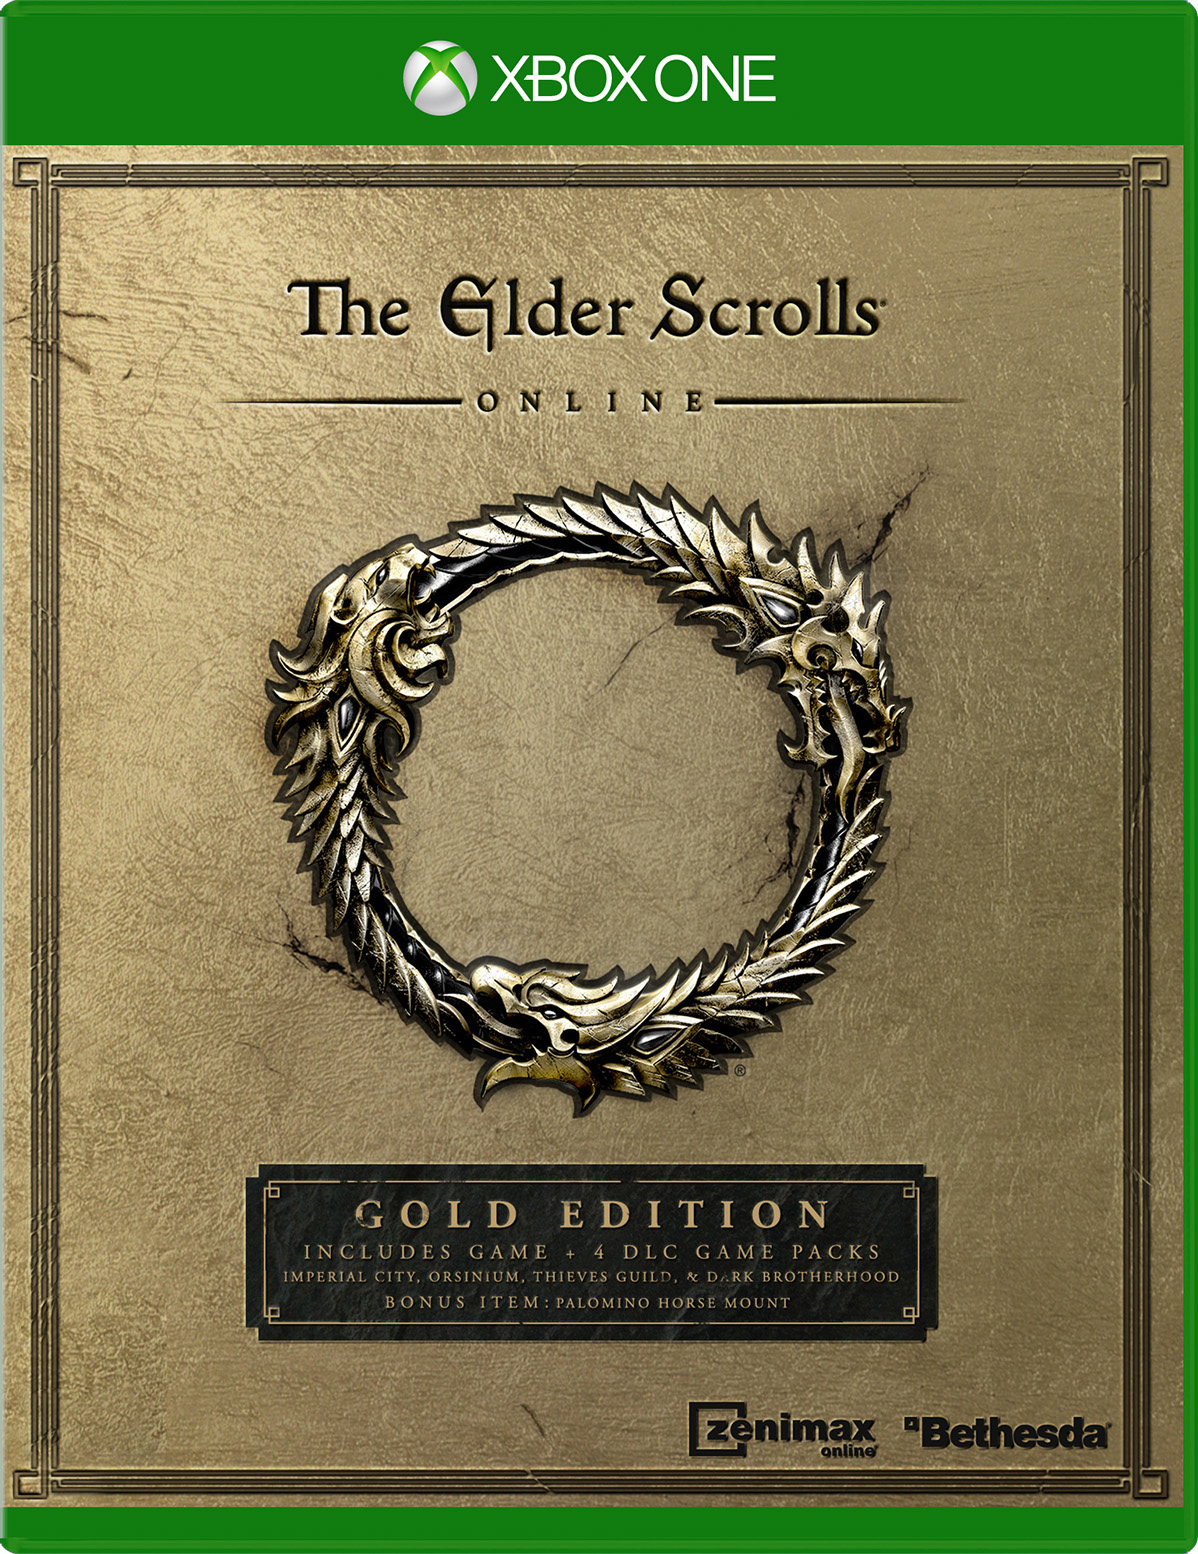 The Elder Scrolls Online: Gold Edition for Xbox One